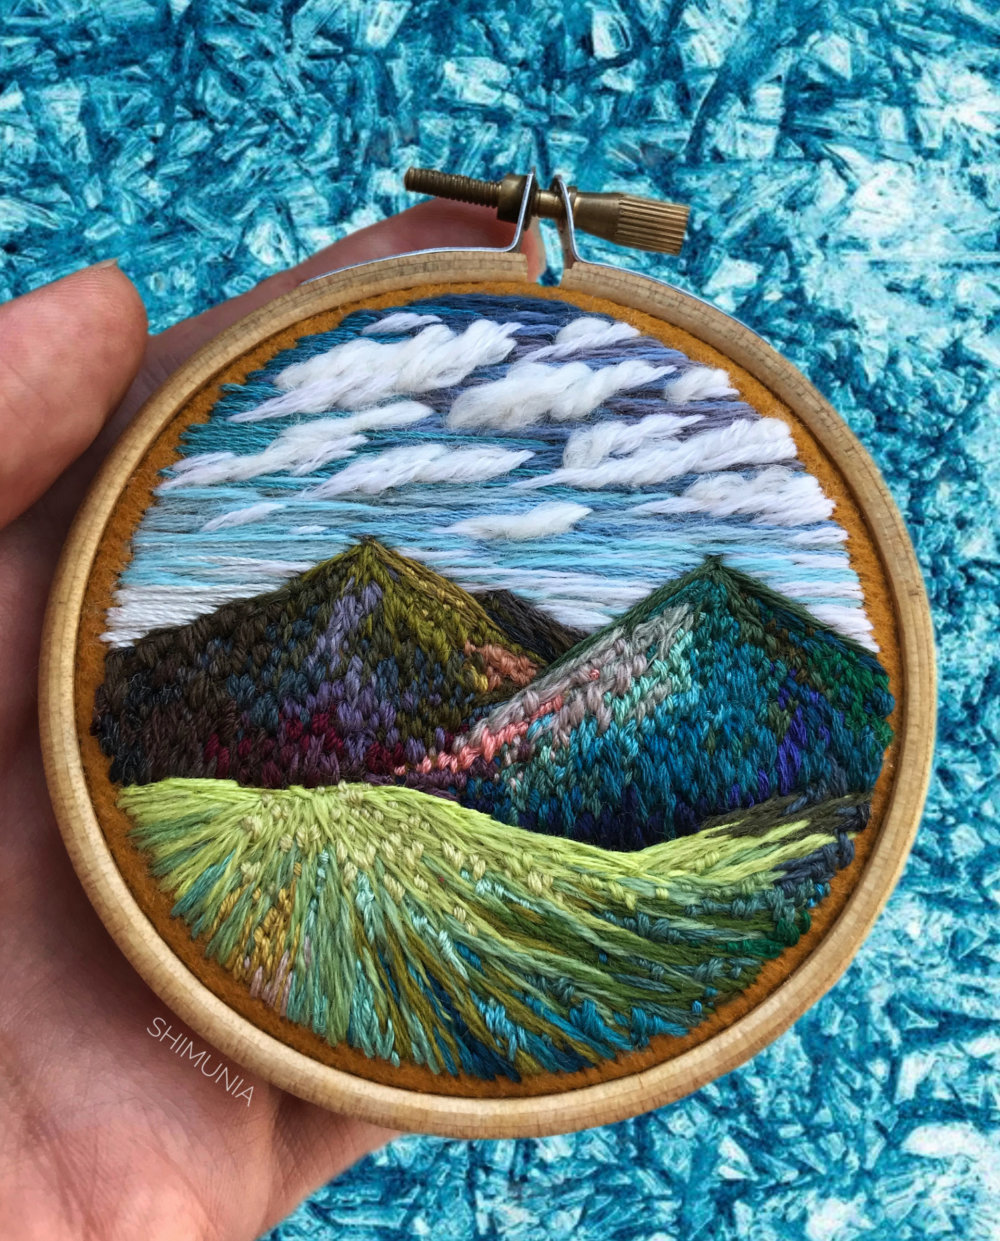 Lush Embroidery Hoop Art Of Landscapes In Vivid Colors By Vera Shimunia 6